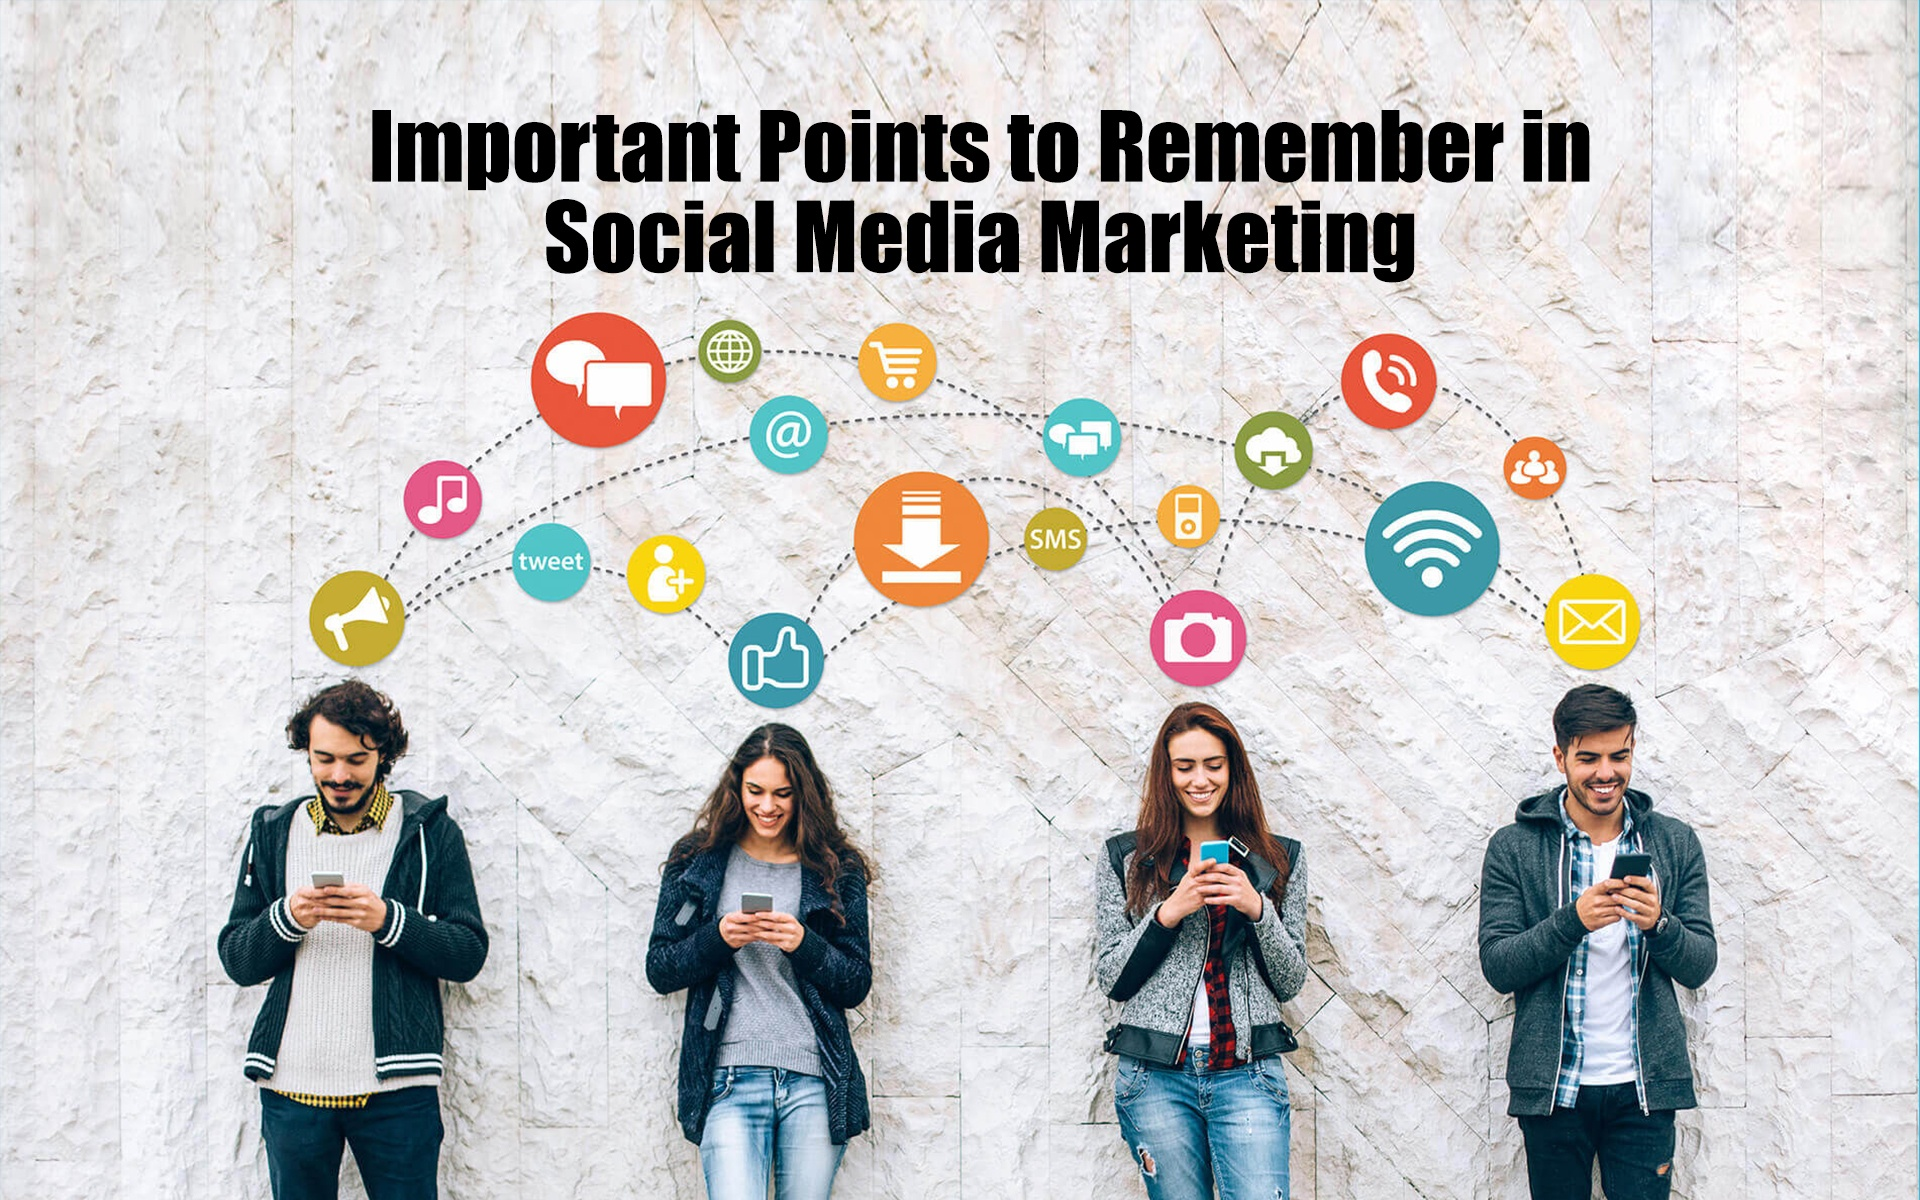 Important Points to Remember in Social Media Marketing